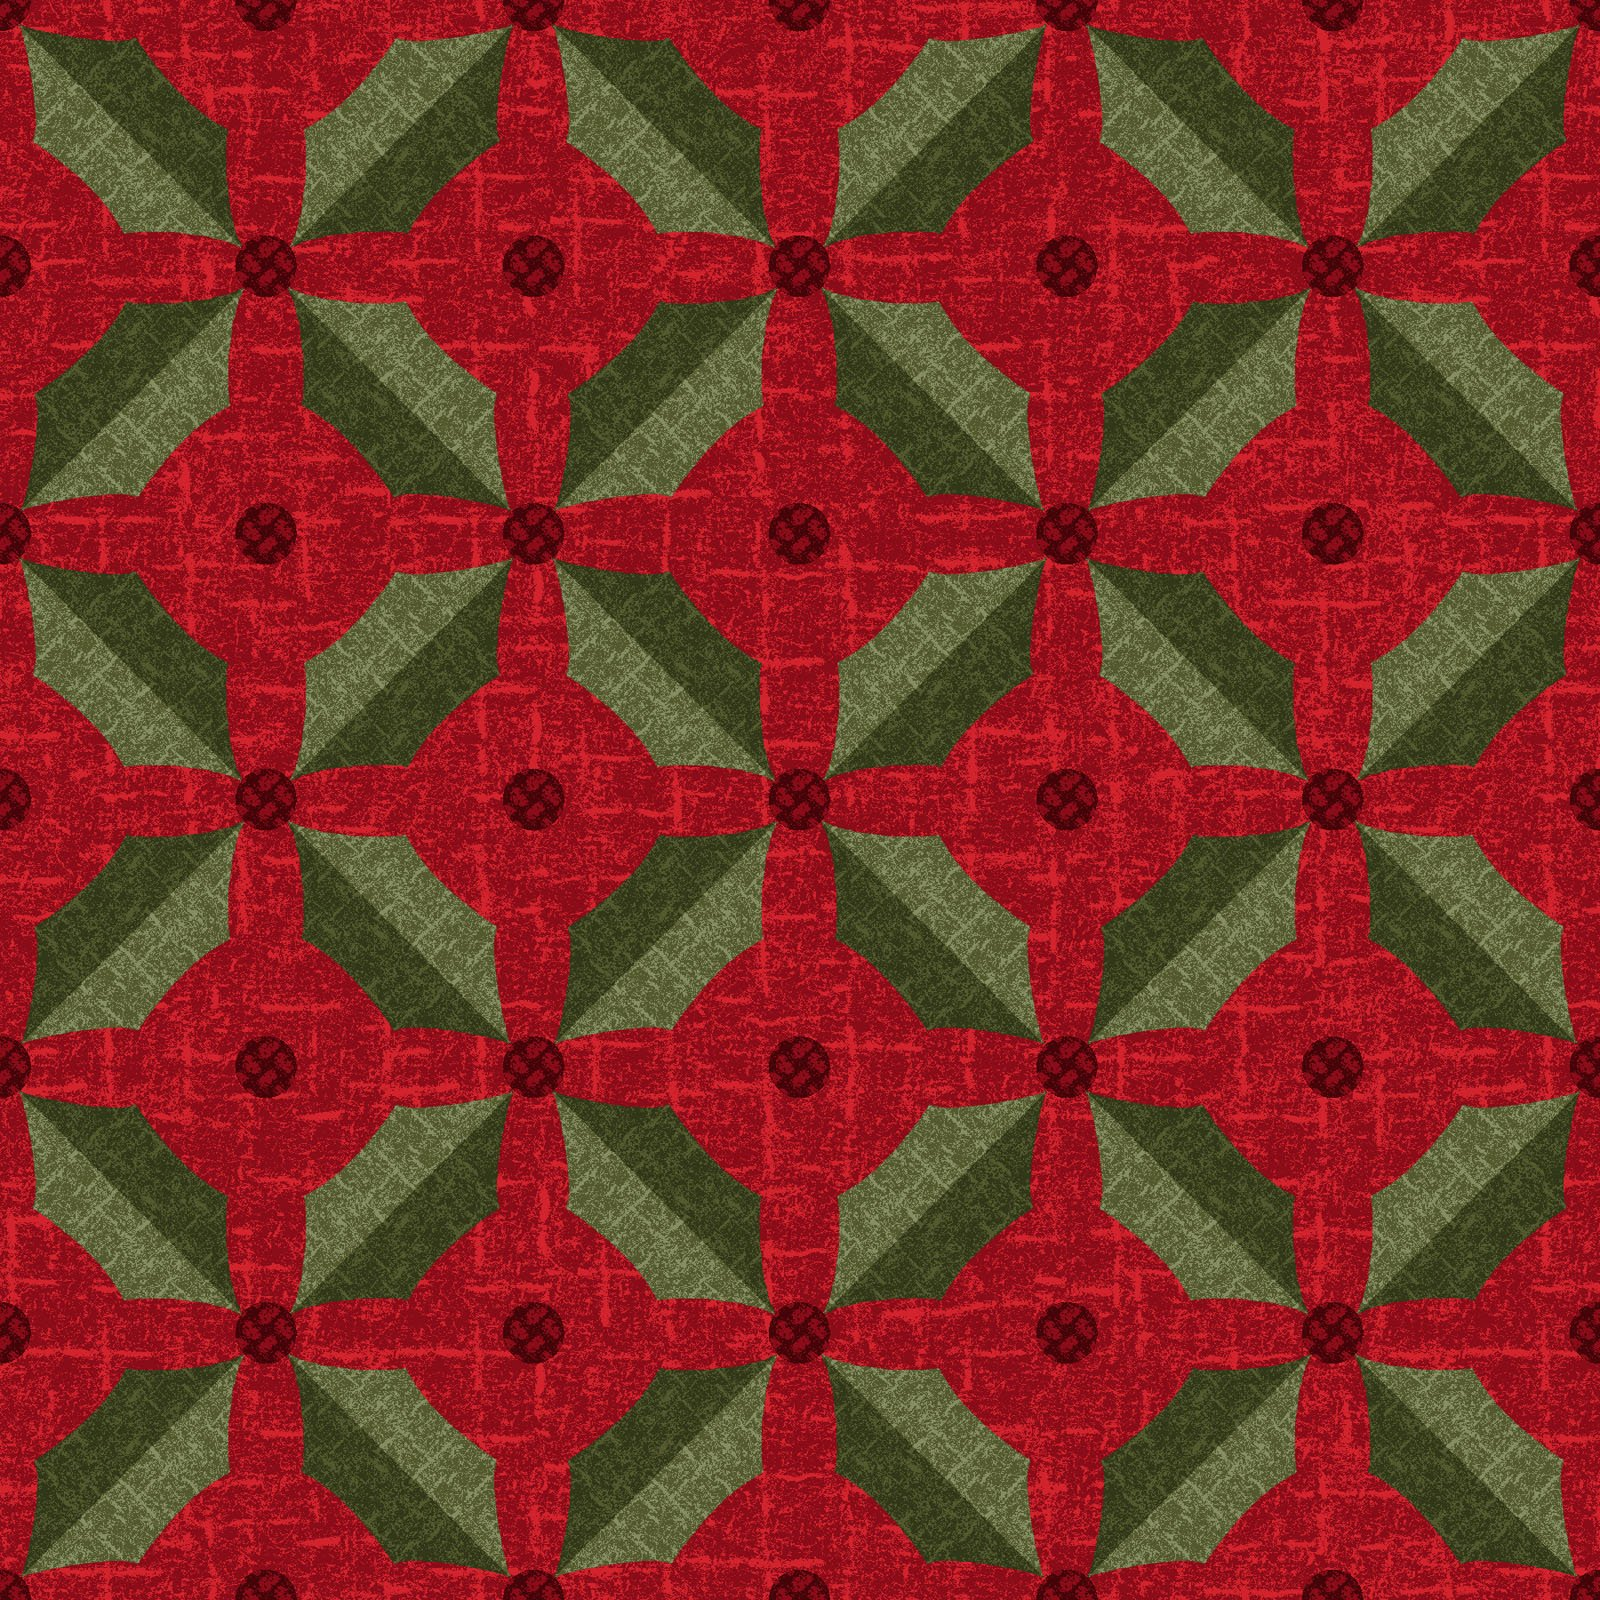 EESC-F9935 R - SNOWDAYS FLANNEL BY BONNIE SULLIVAN HOLLY RED - ARRIVING IN JULY 2021